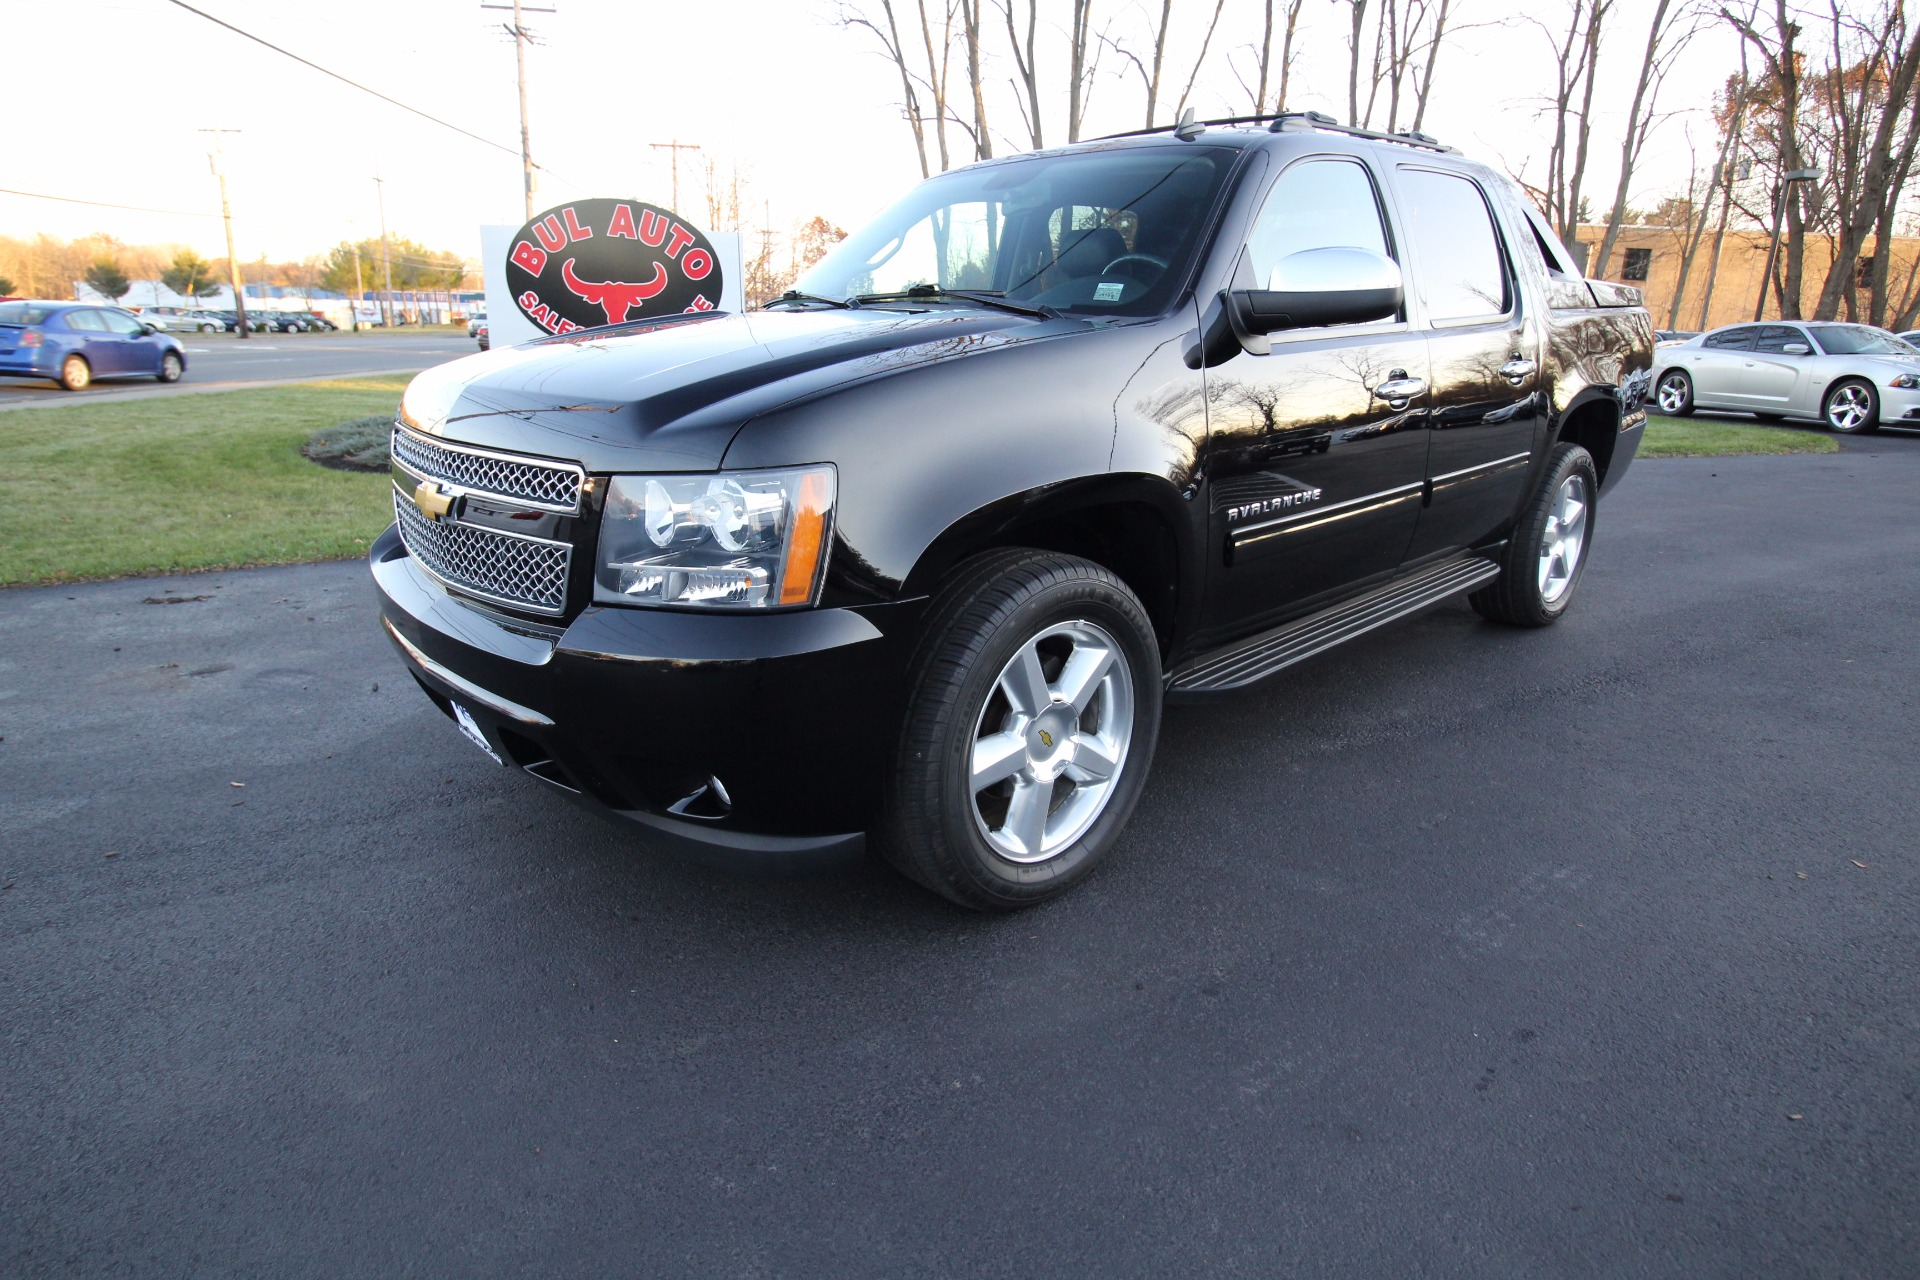 2013 chevrolet avalanche lt 4wd black diamond edition stock 17231 for sale near albany ny. Black Bedroom Furniture Sets. Home Design Ideas